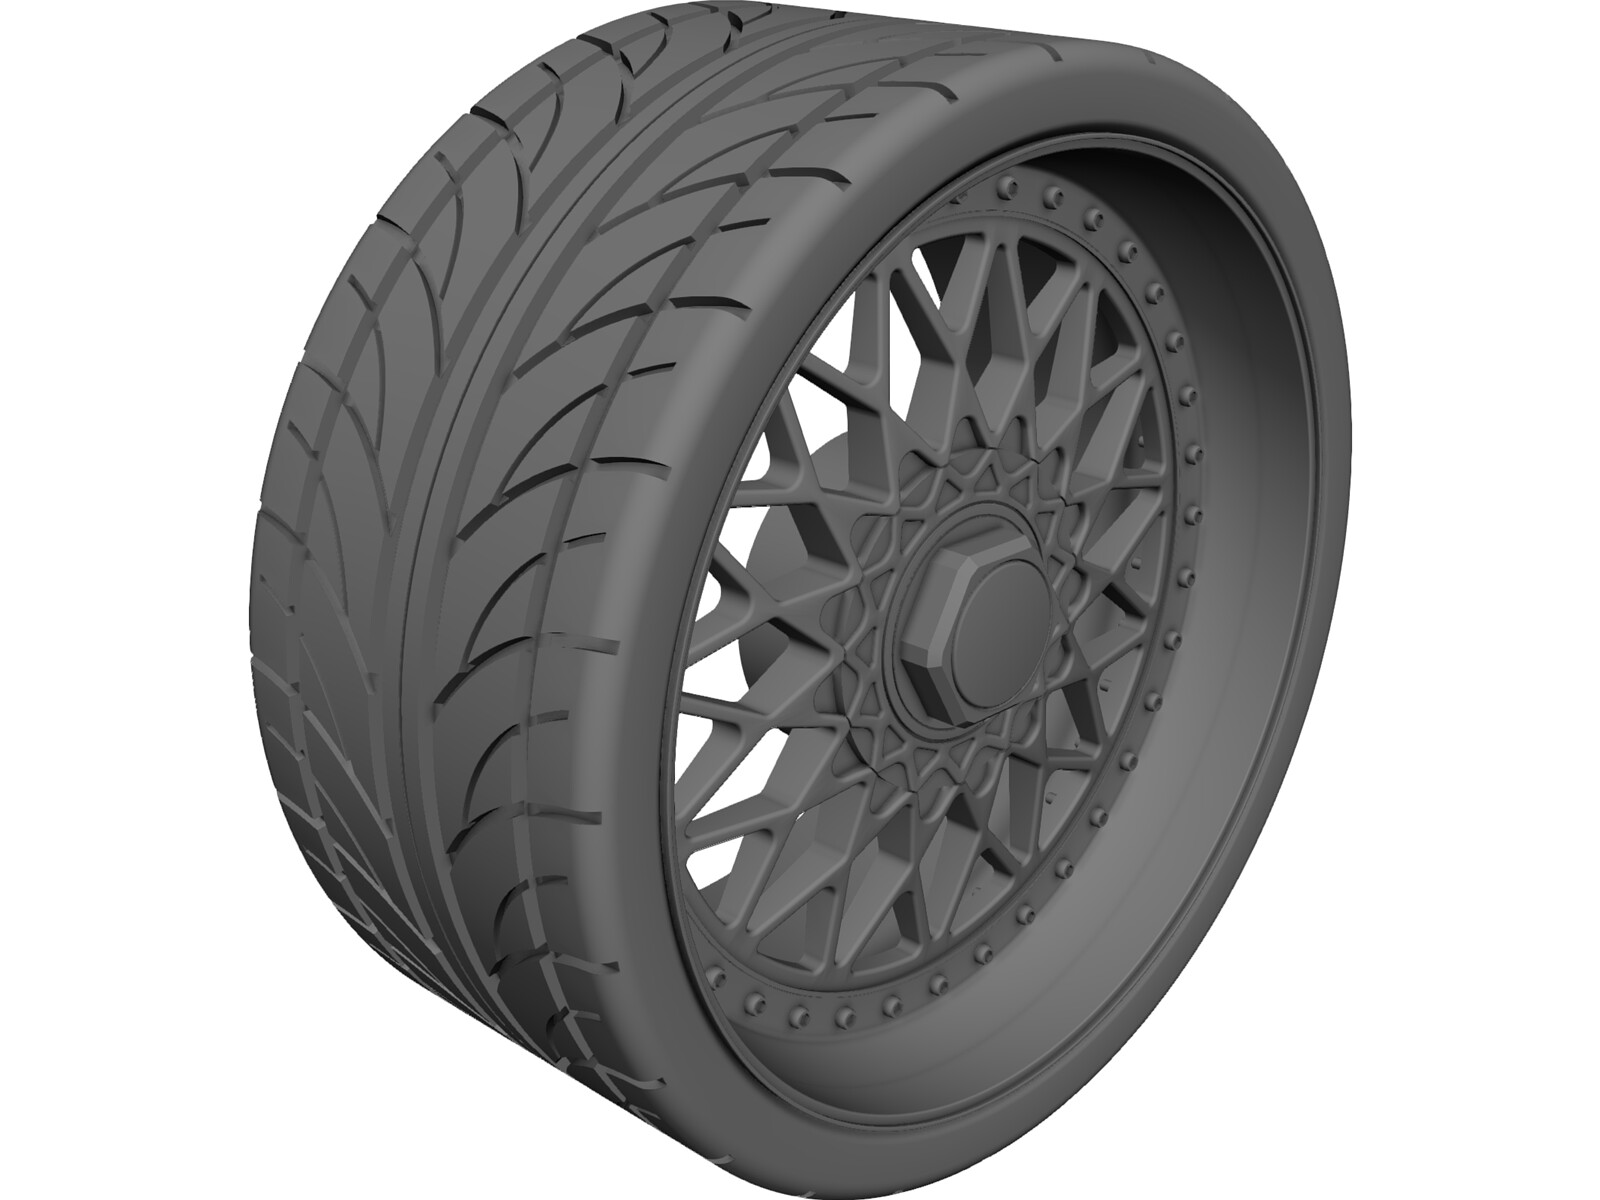 BBS RS Replica 3 Piece Wheel and Tire 3D CAD Model